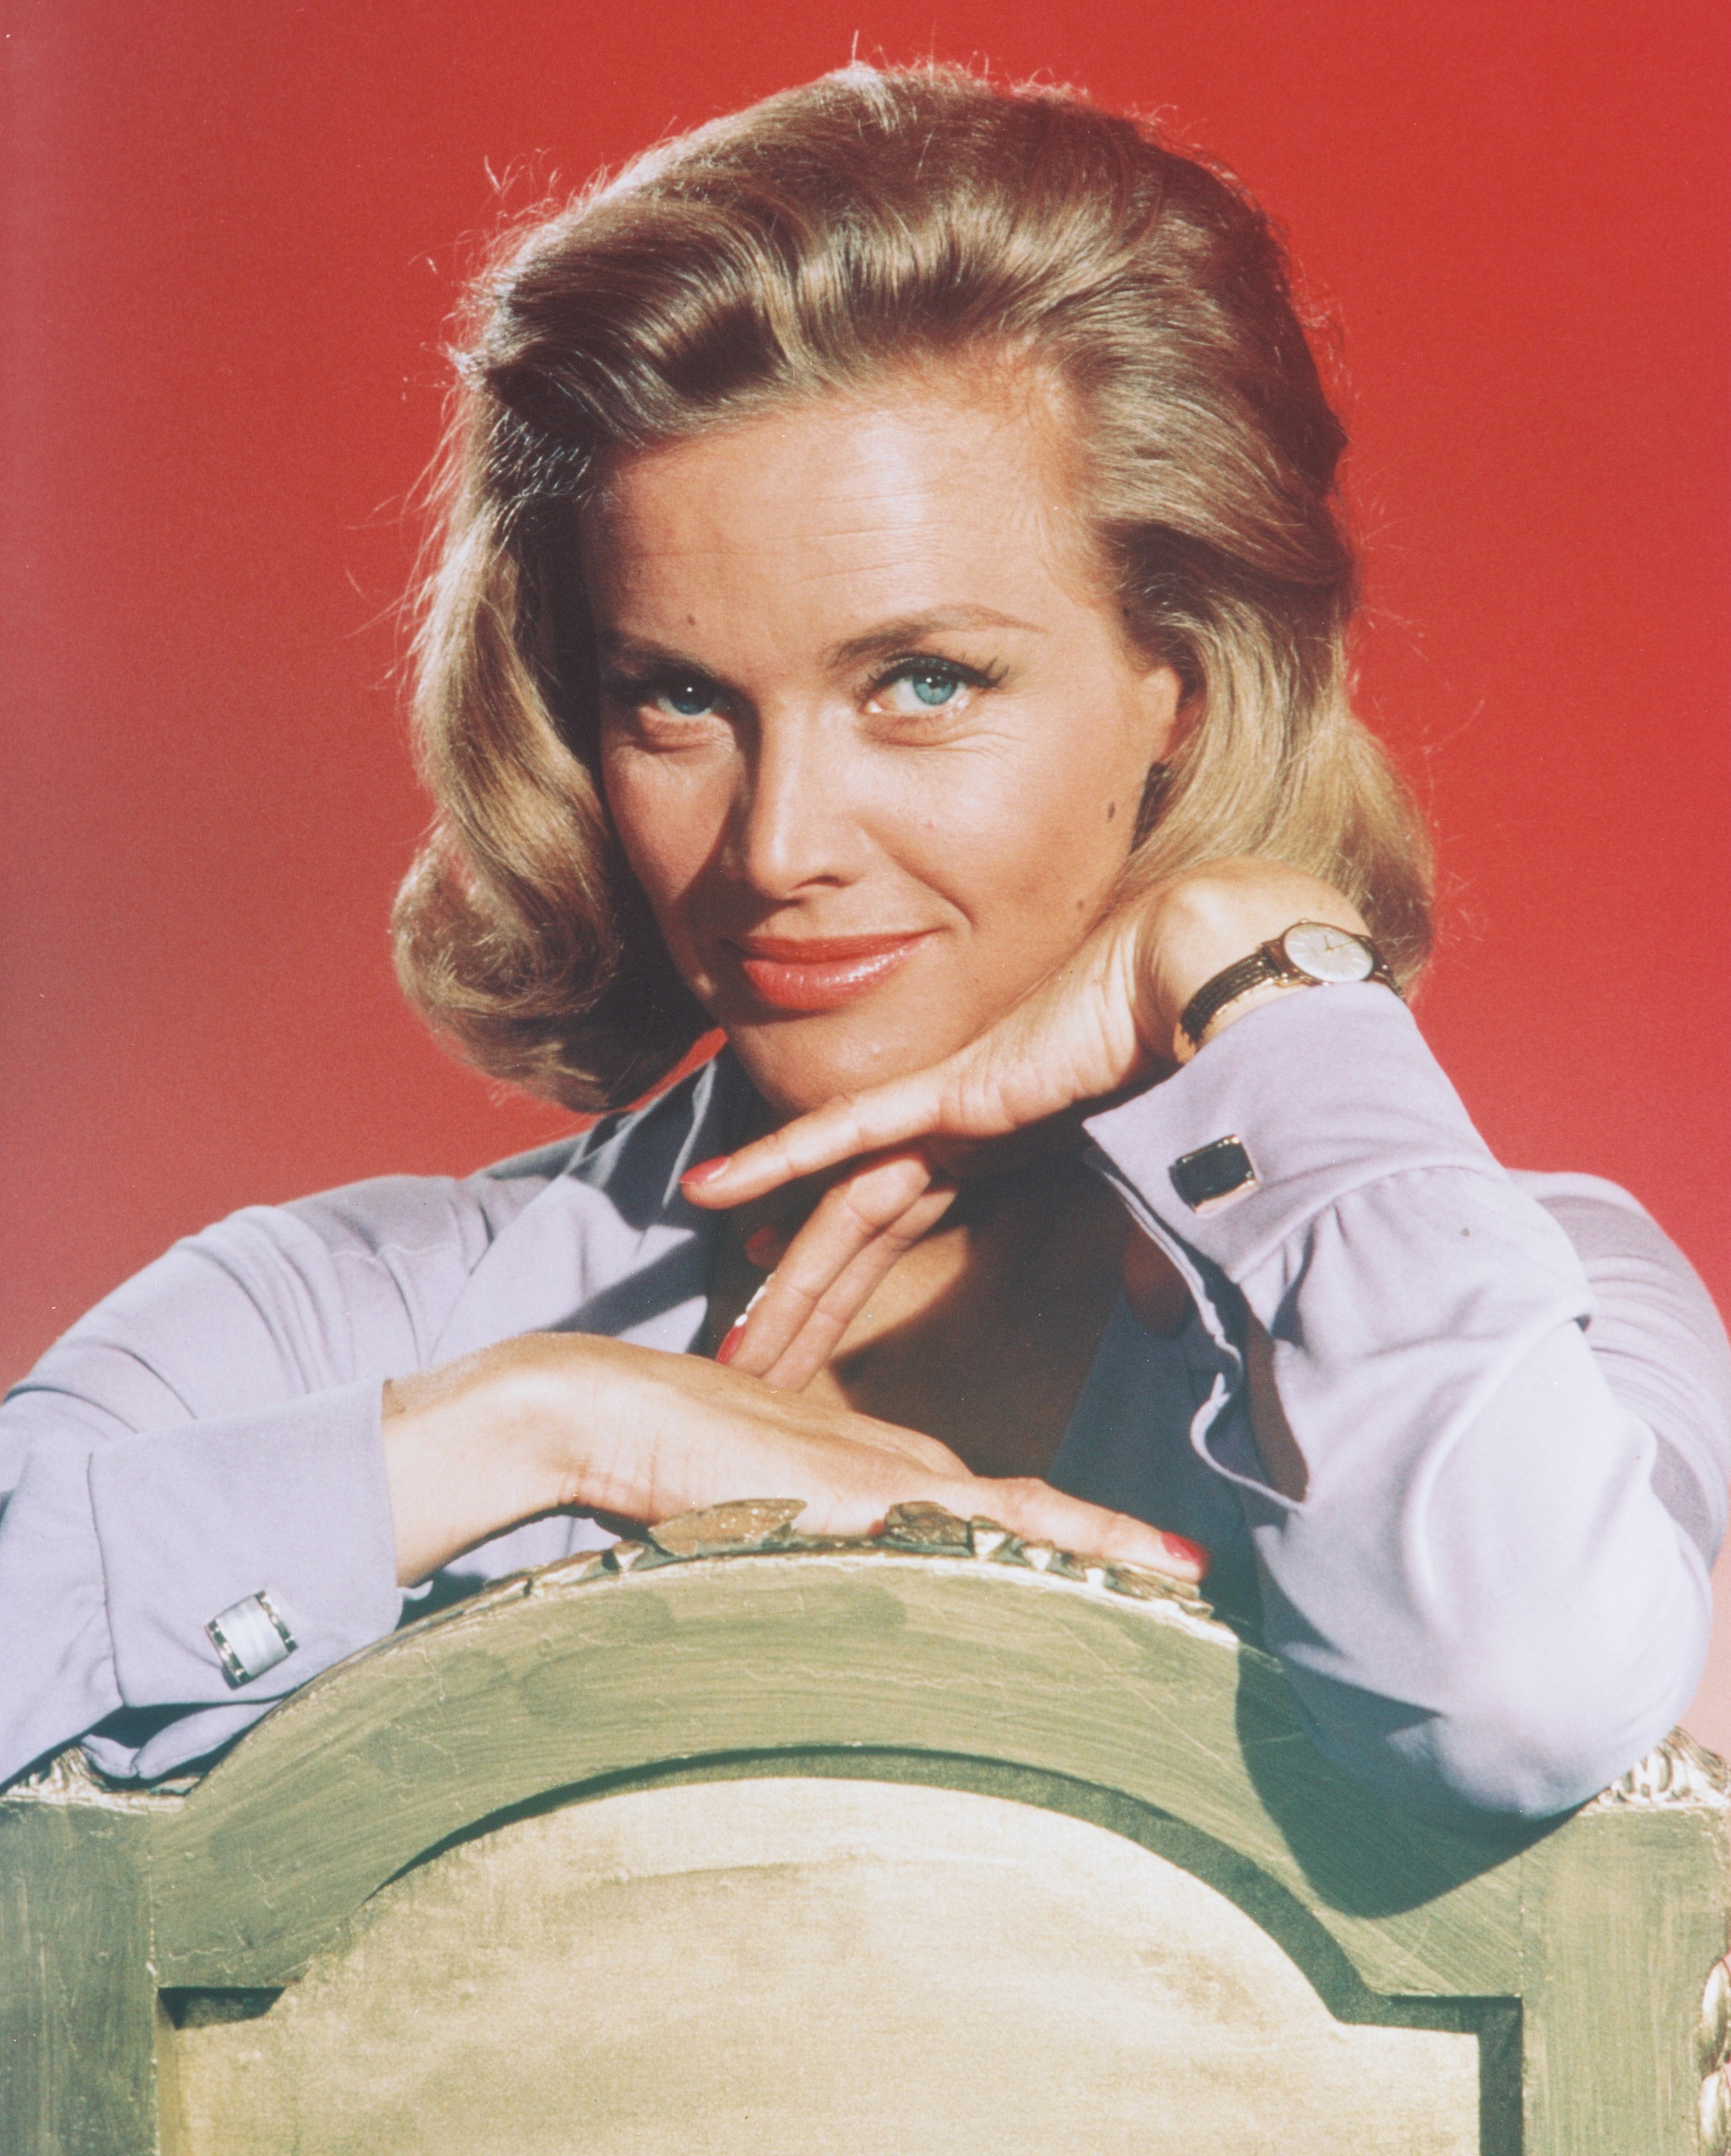 Honor Blackman poses in a studio portrait  issued as publicity for the film, 'Goldfinger', circa 1964.